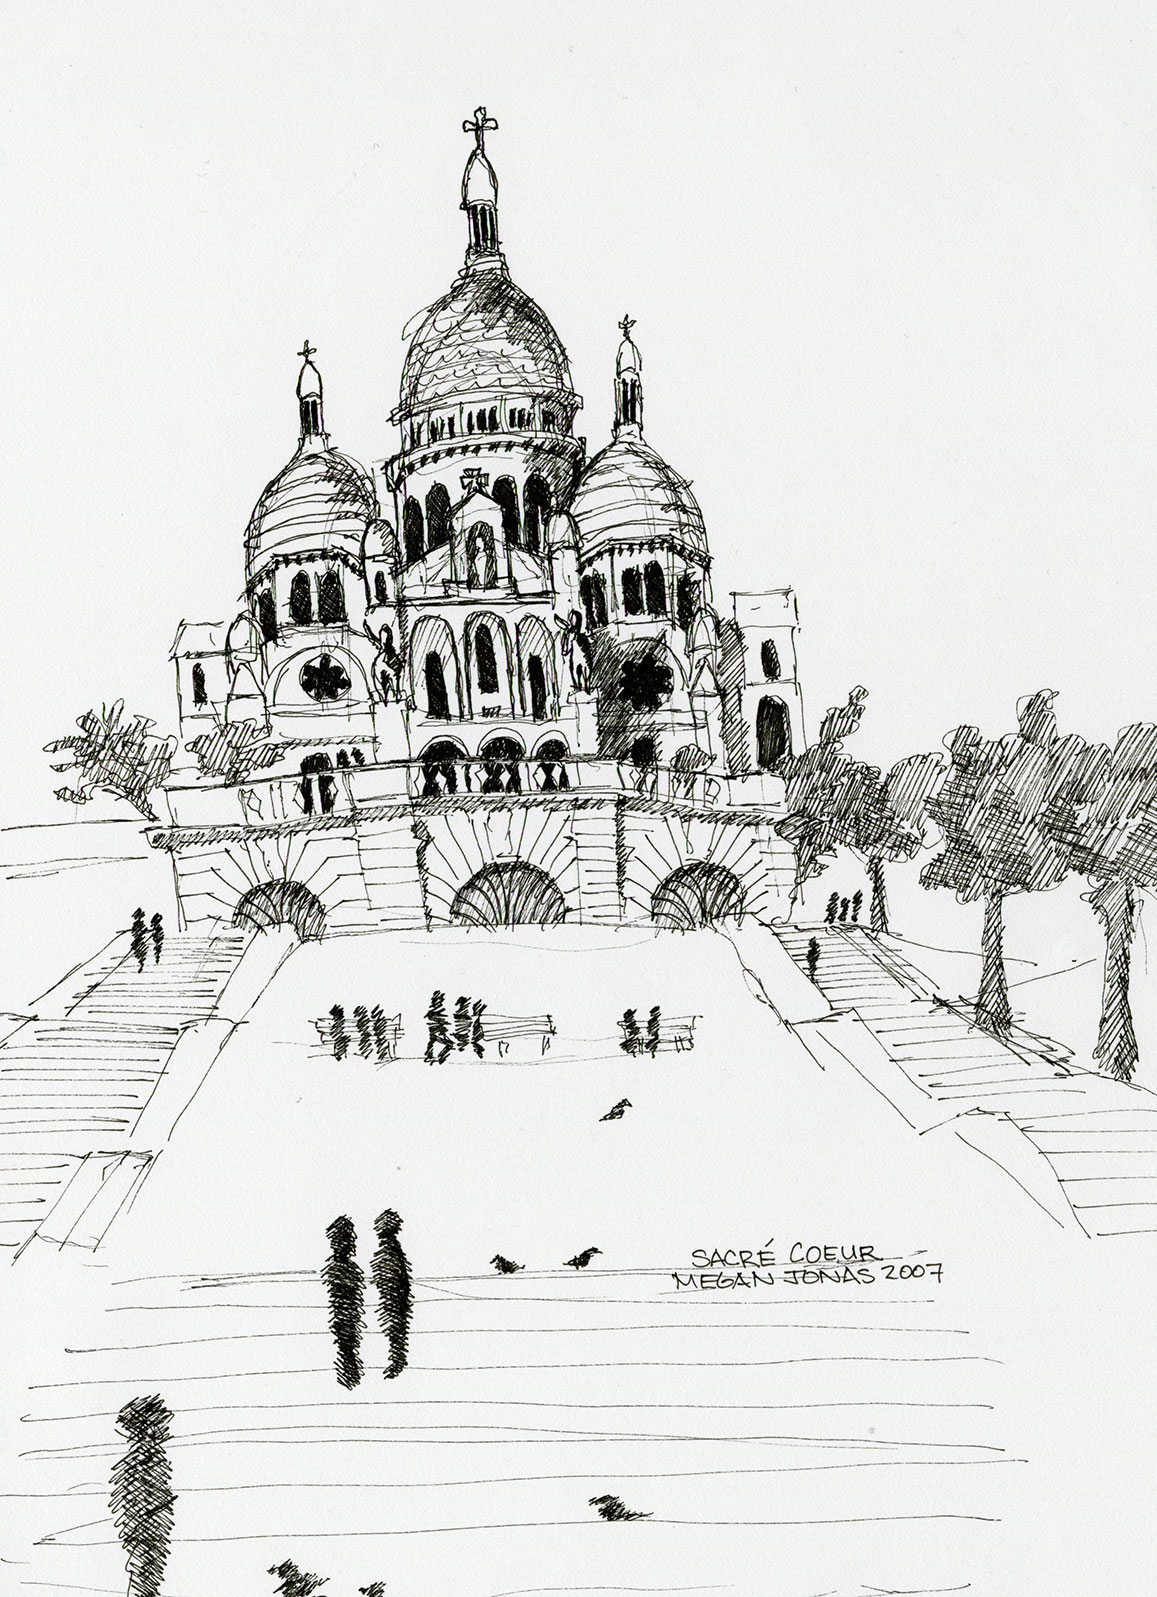 Ink drawing of the Sacré-Cœur Basilica in Paris.